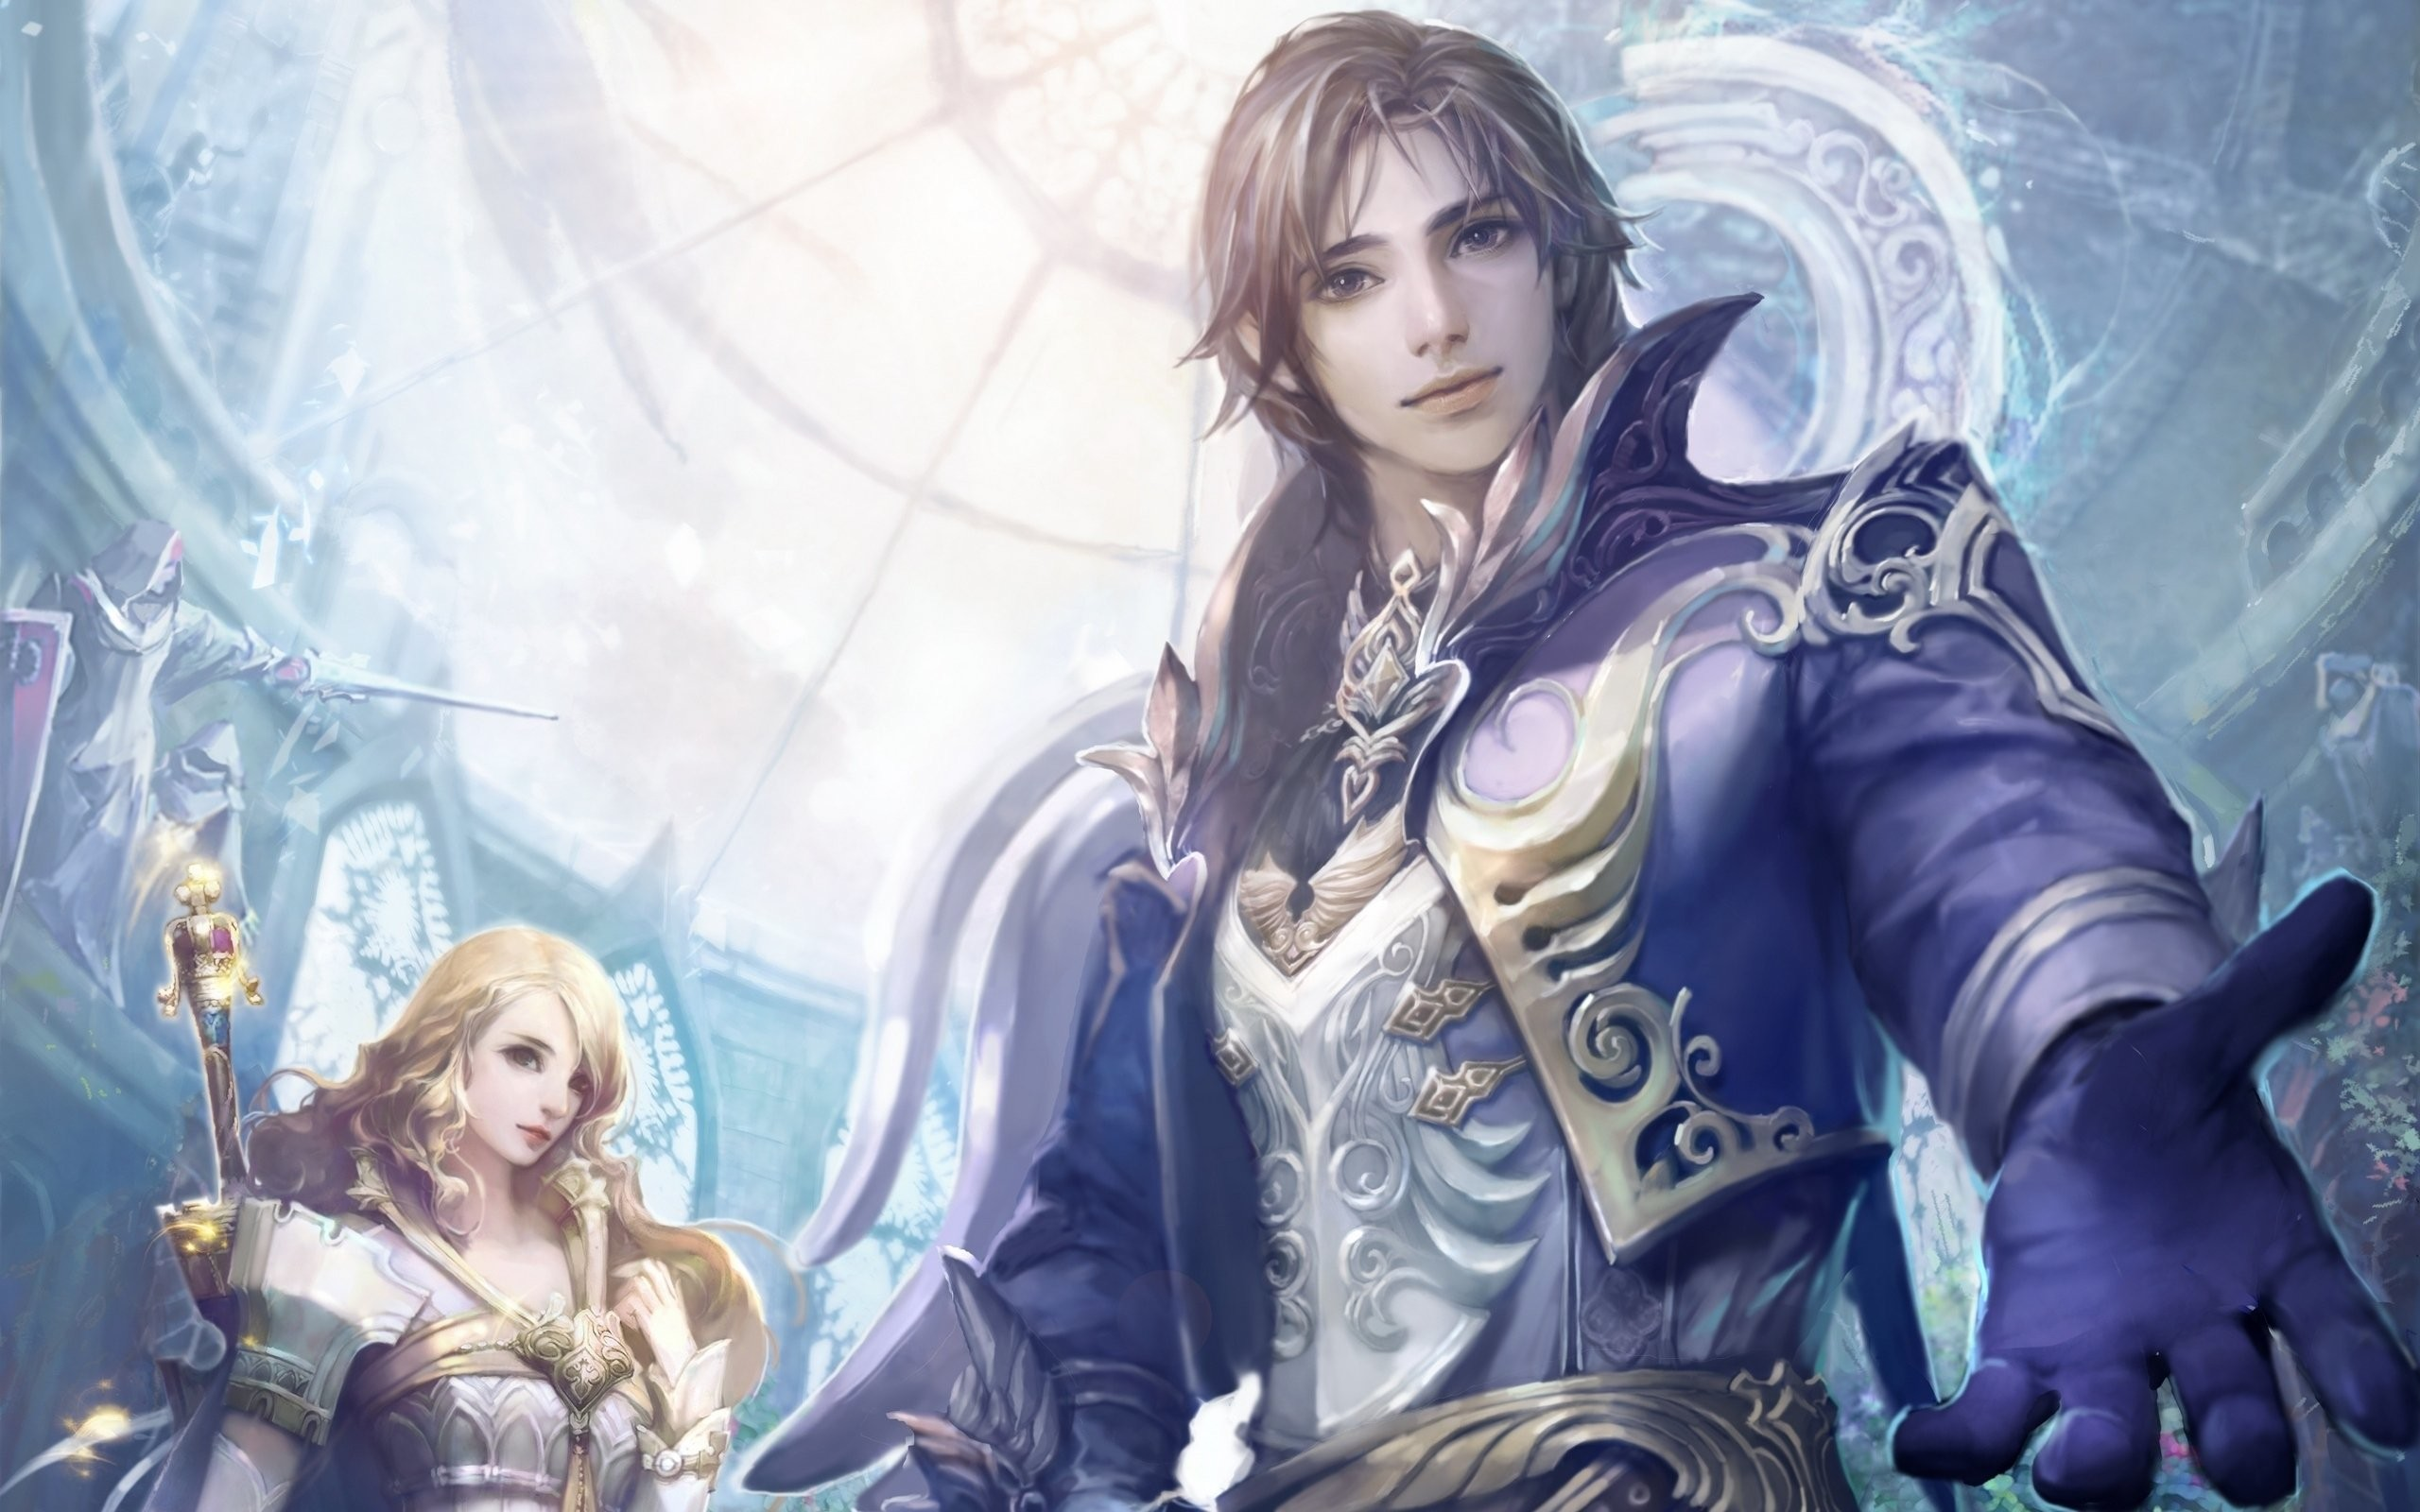 wallpaper-monitor-game-elf-girl-eternity-aion-beach-tower-wallpapers-static.jpg  (2560×1600)   aion   Pinterest   Girl wallpaper, Wallpaper art and Wallpaper